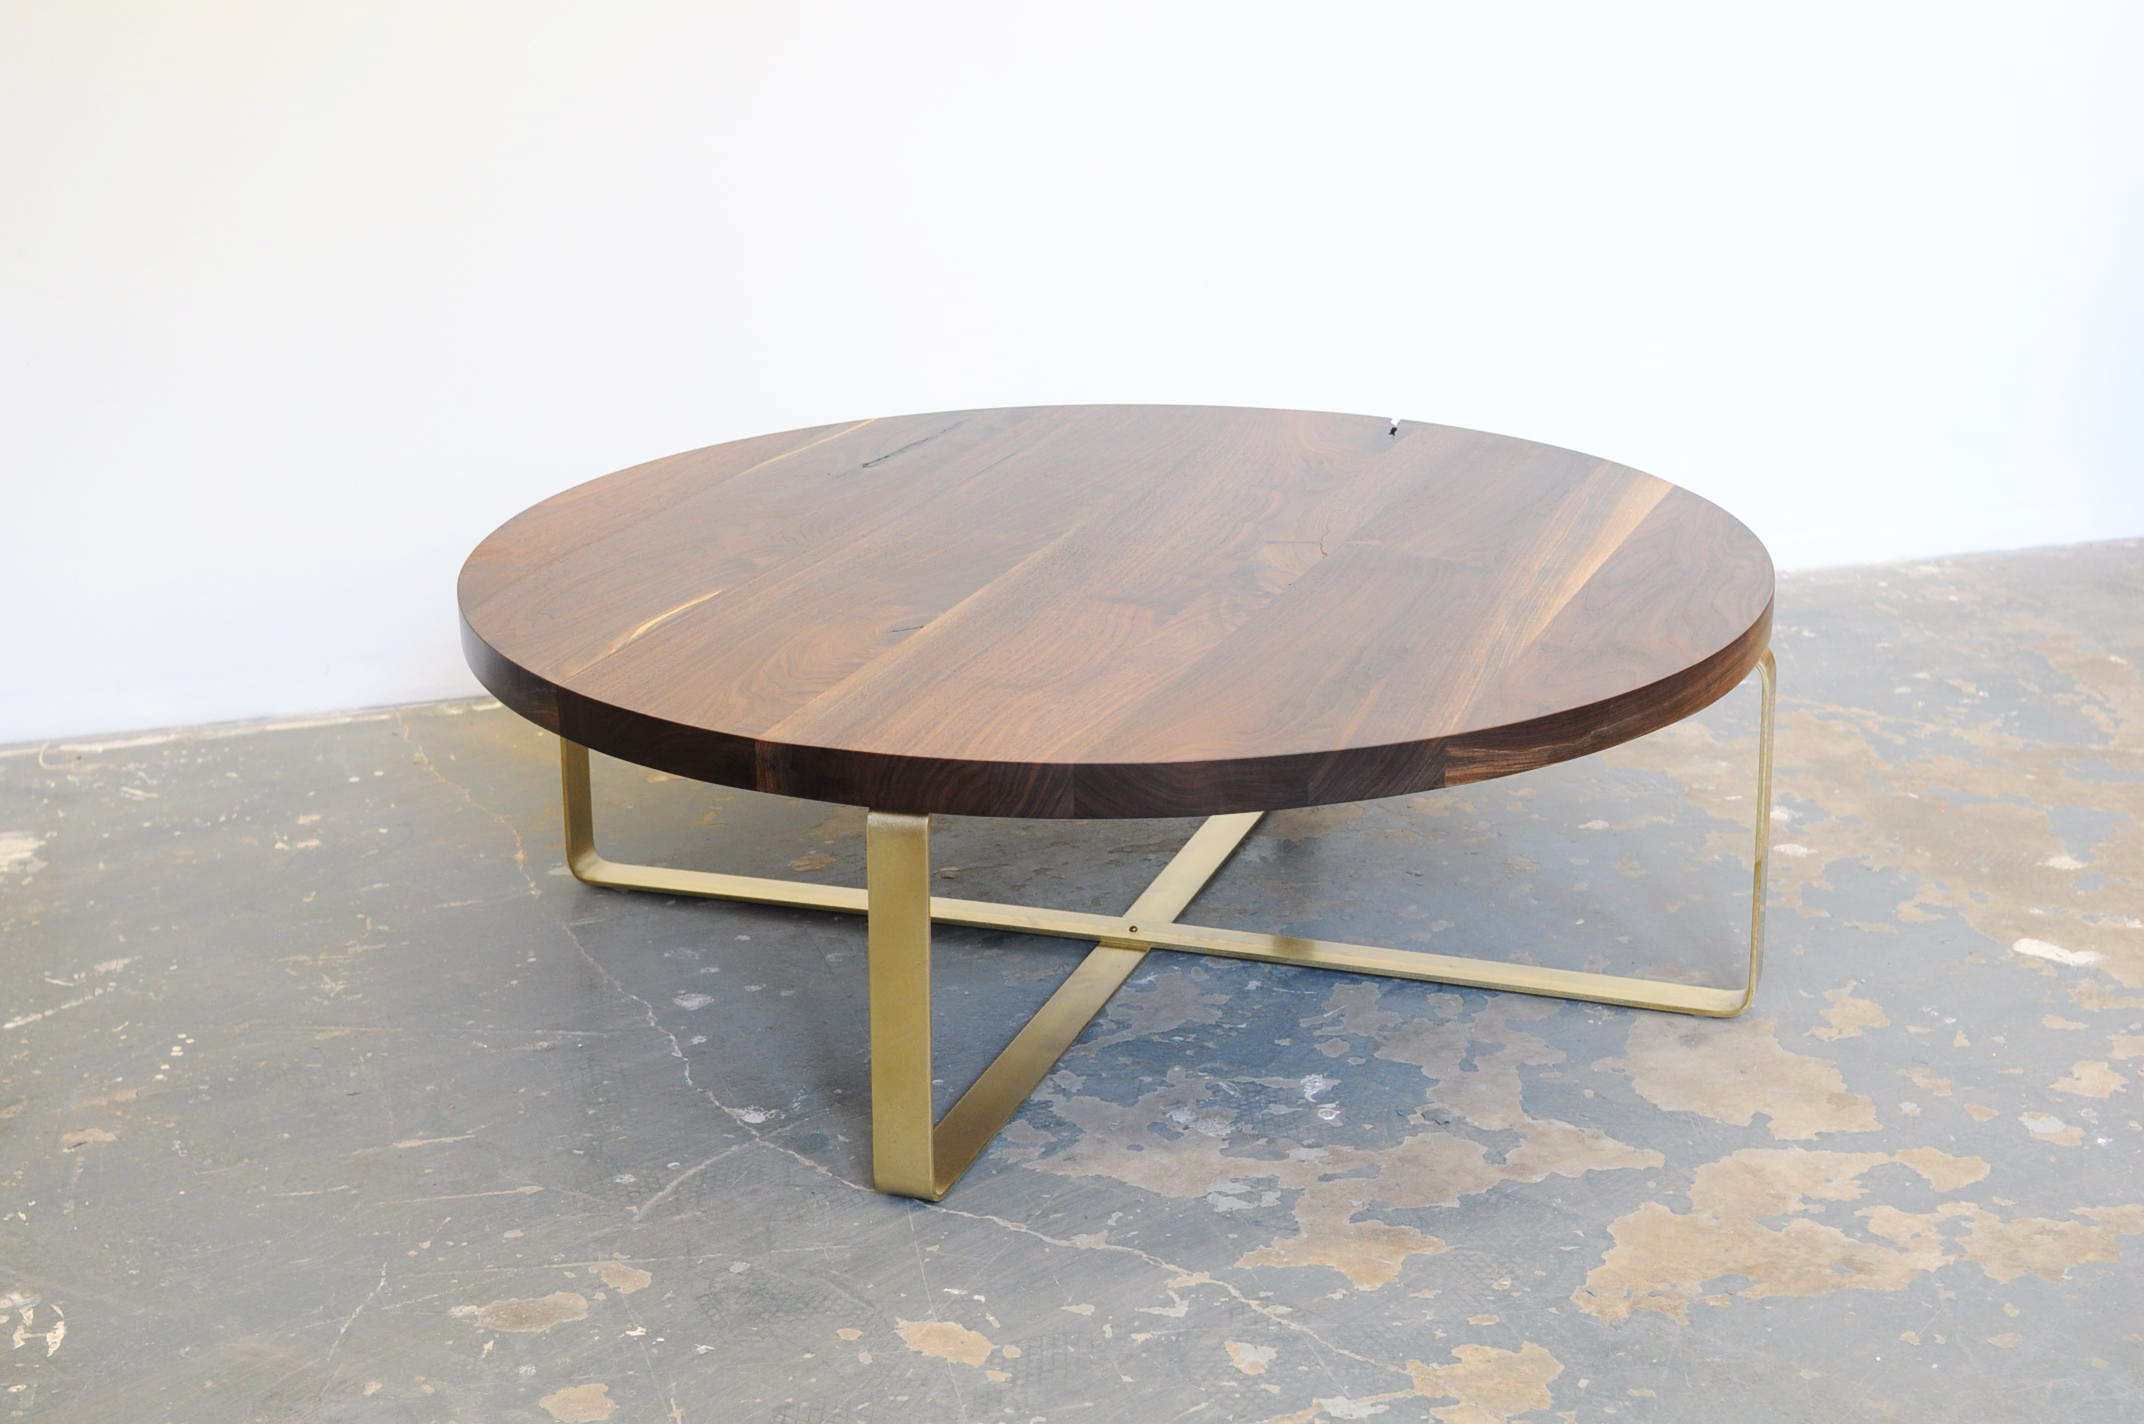 Joni Brass And Wood Coffee Tables Regarding Most Current Brass And Wood Coffee Table Brass And Wood Coffee Table (View 9 of 20)